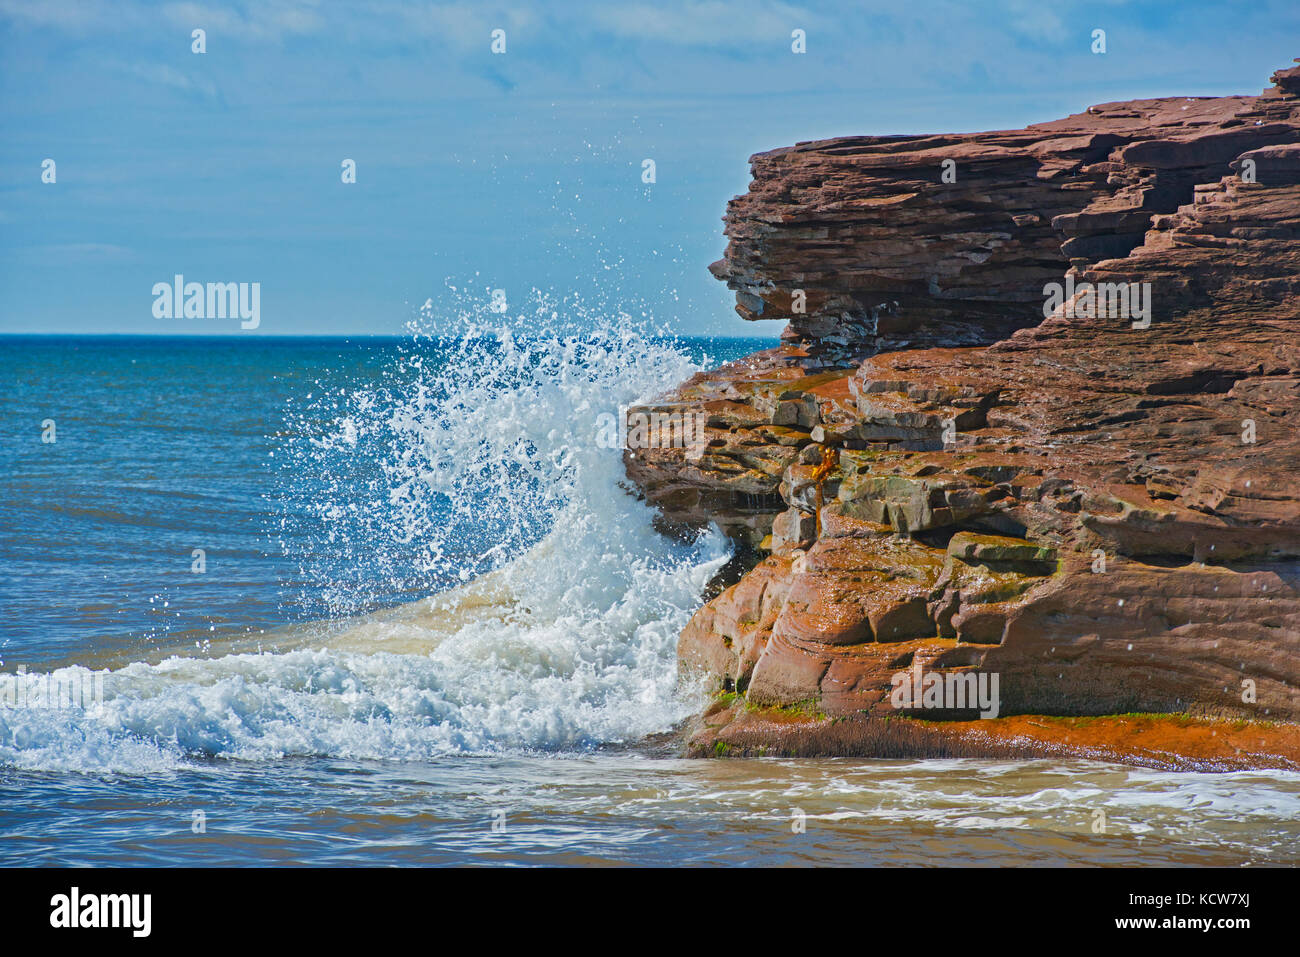 Waves lapping against a rocky outcrop on Lamèque Island, New Brunswick, Canada - Stock Image